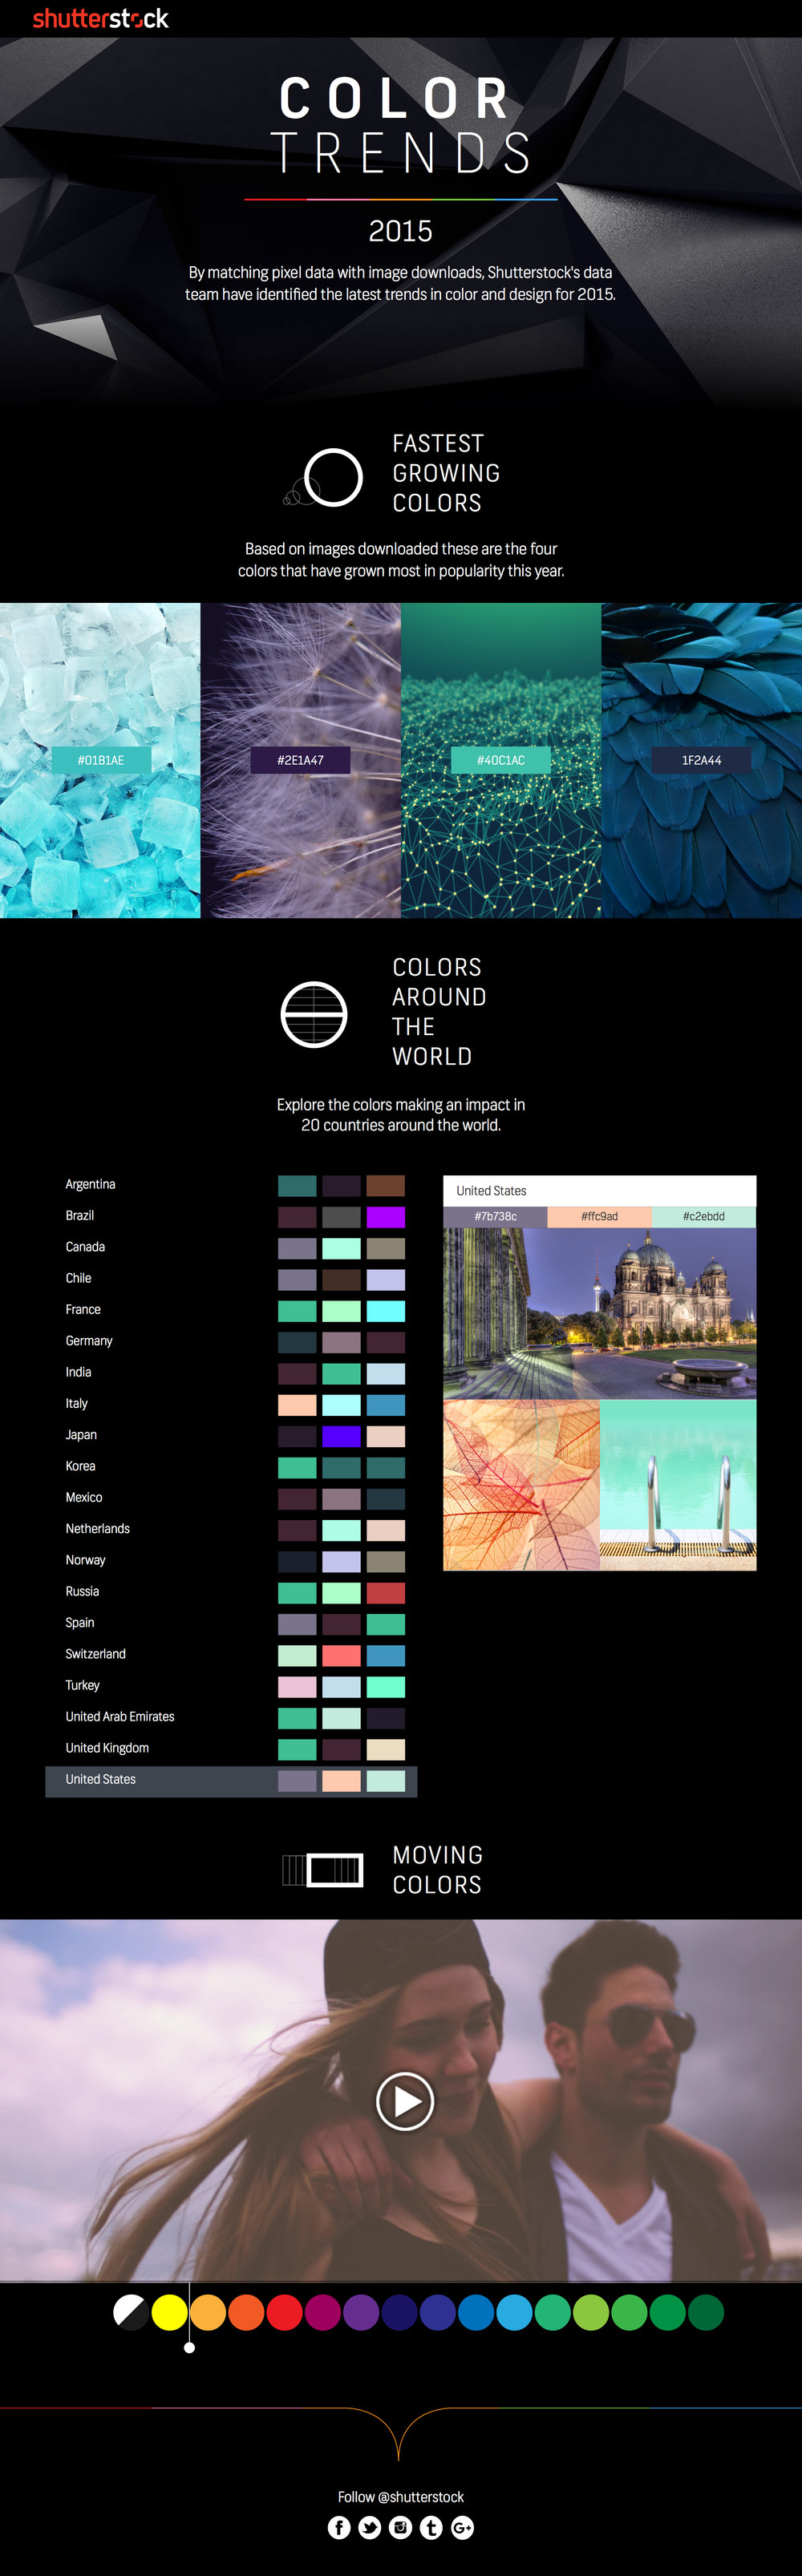 Color Trends from 2015 infographic